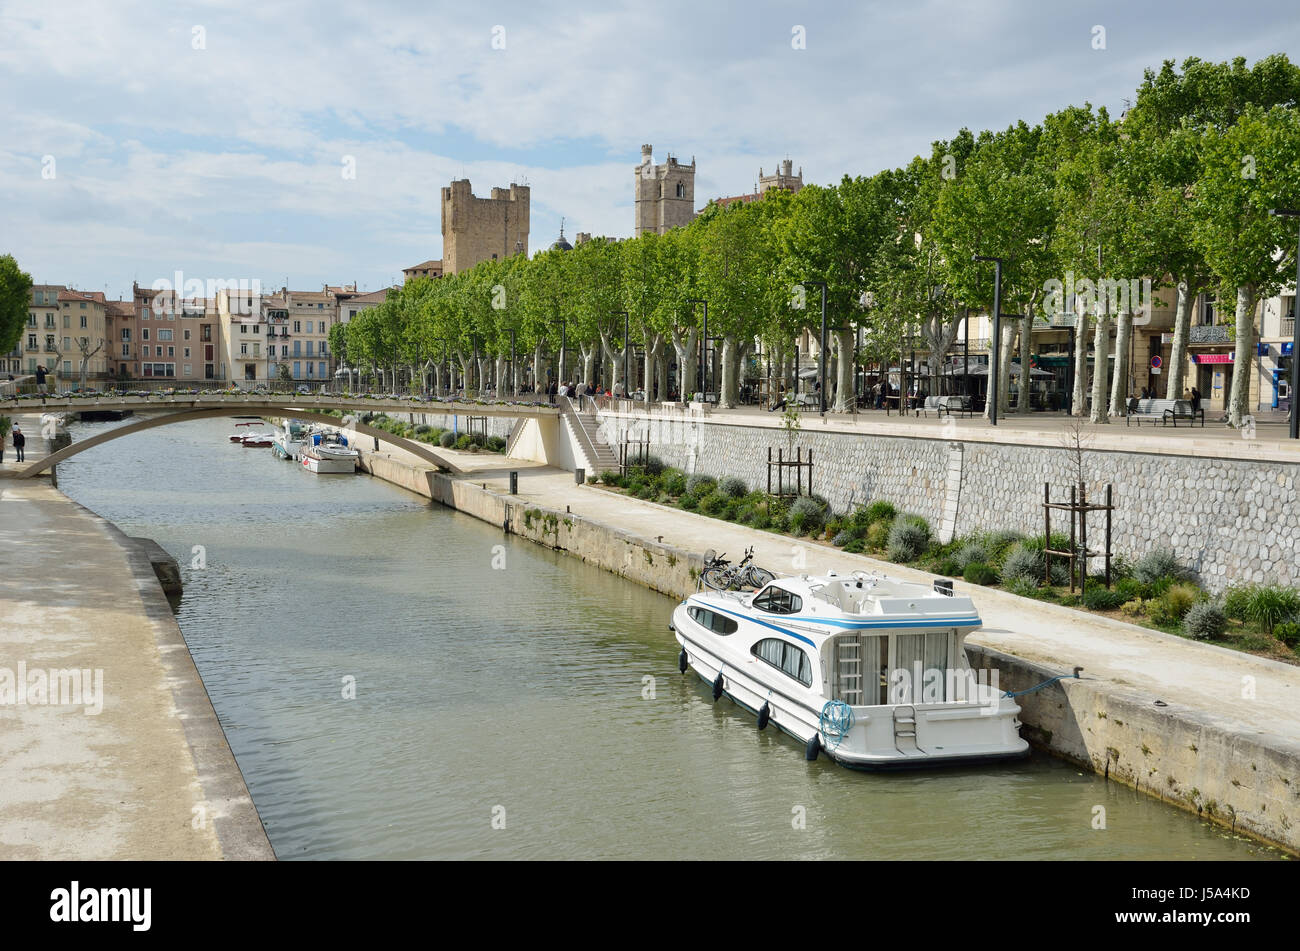 Canal de la Robine in Narbonne. Stock Photo